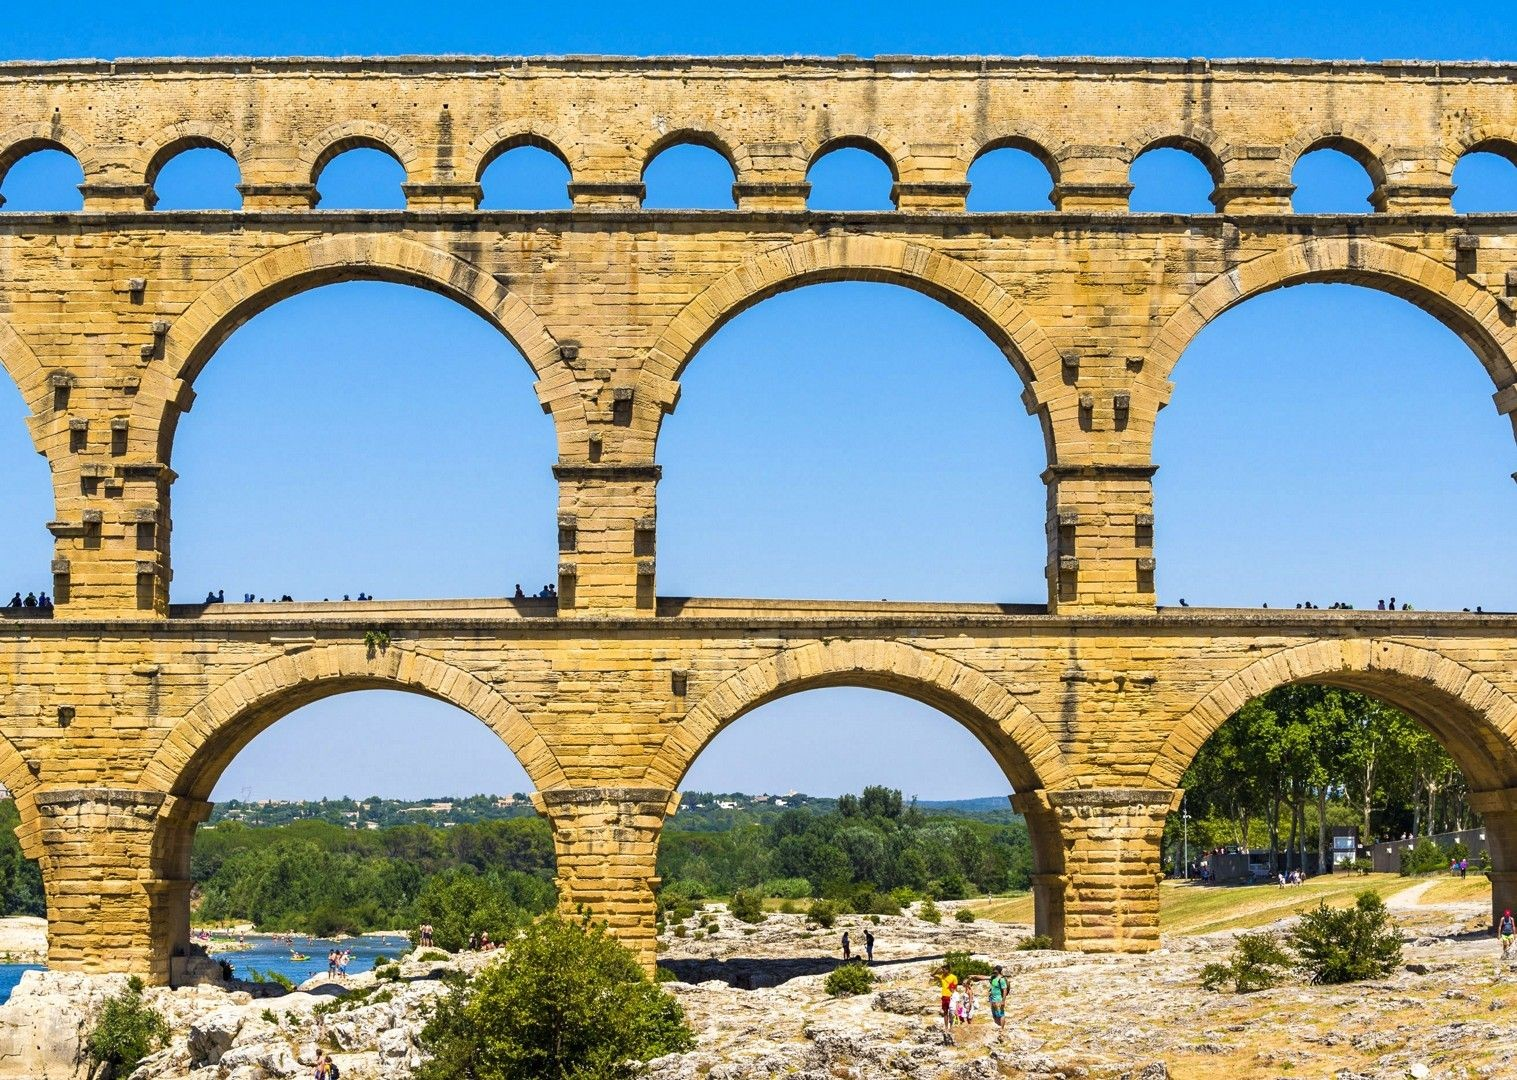 vers-pont-du-gard-france-cycling-holiday-saddle-skedaddle-cultural-fun.jpg - France - Provence - Self-Guided Leisure Cycling Holiday - Leisure Cycling